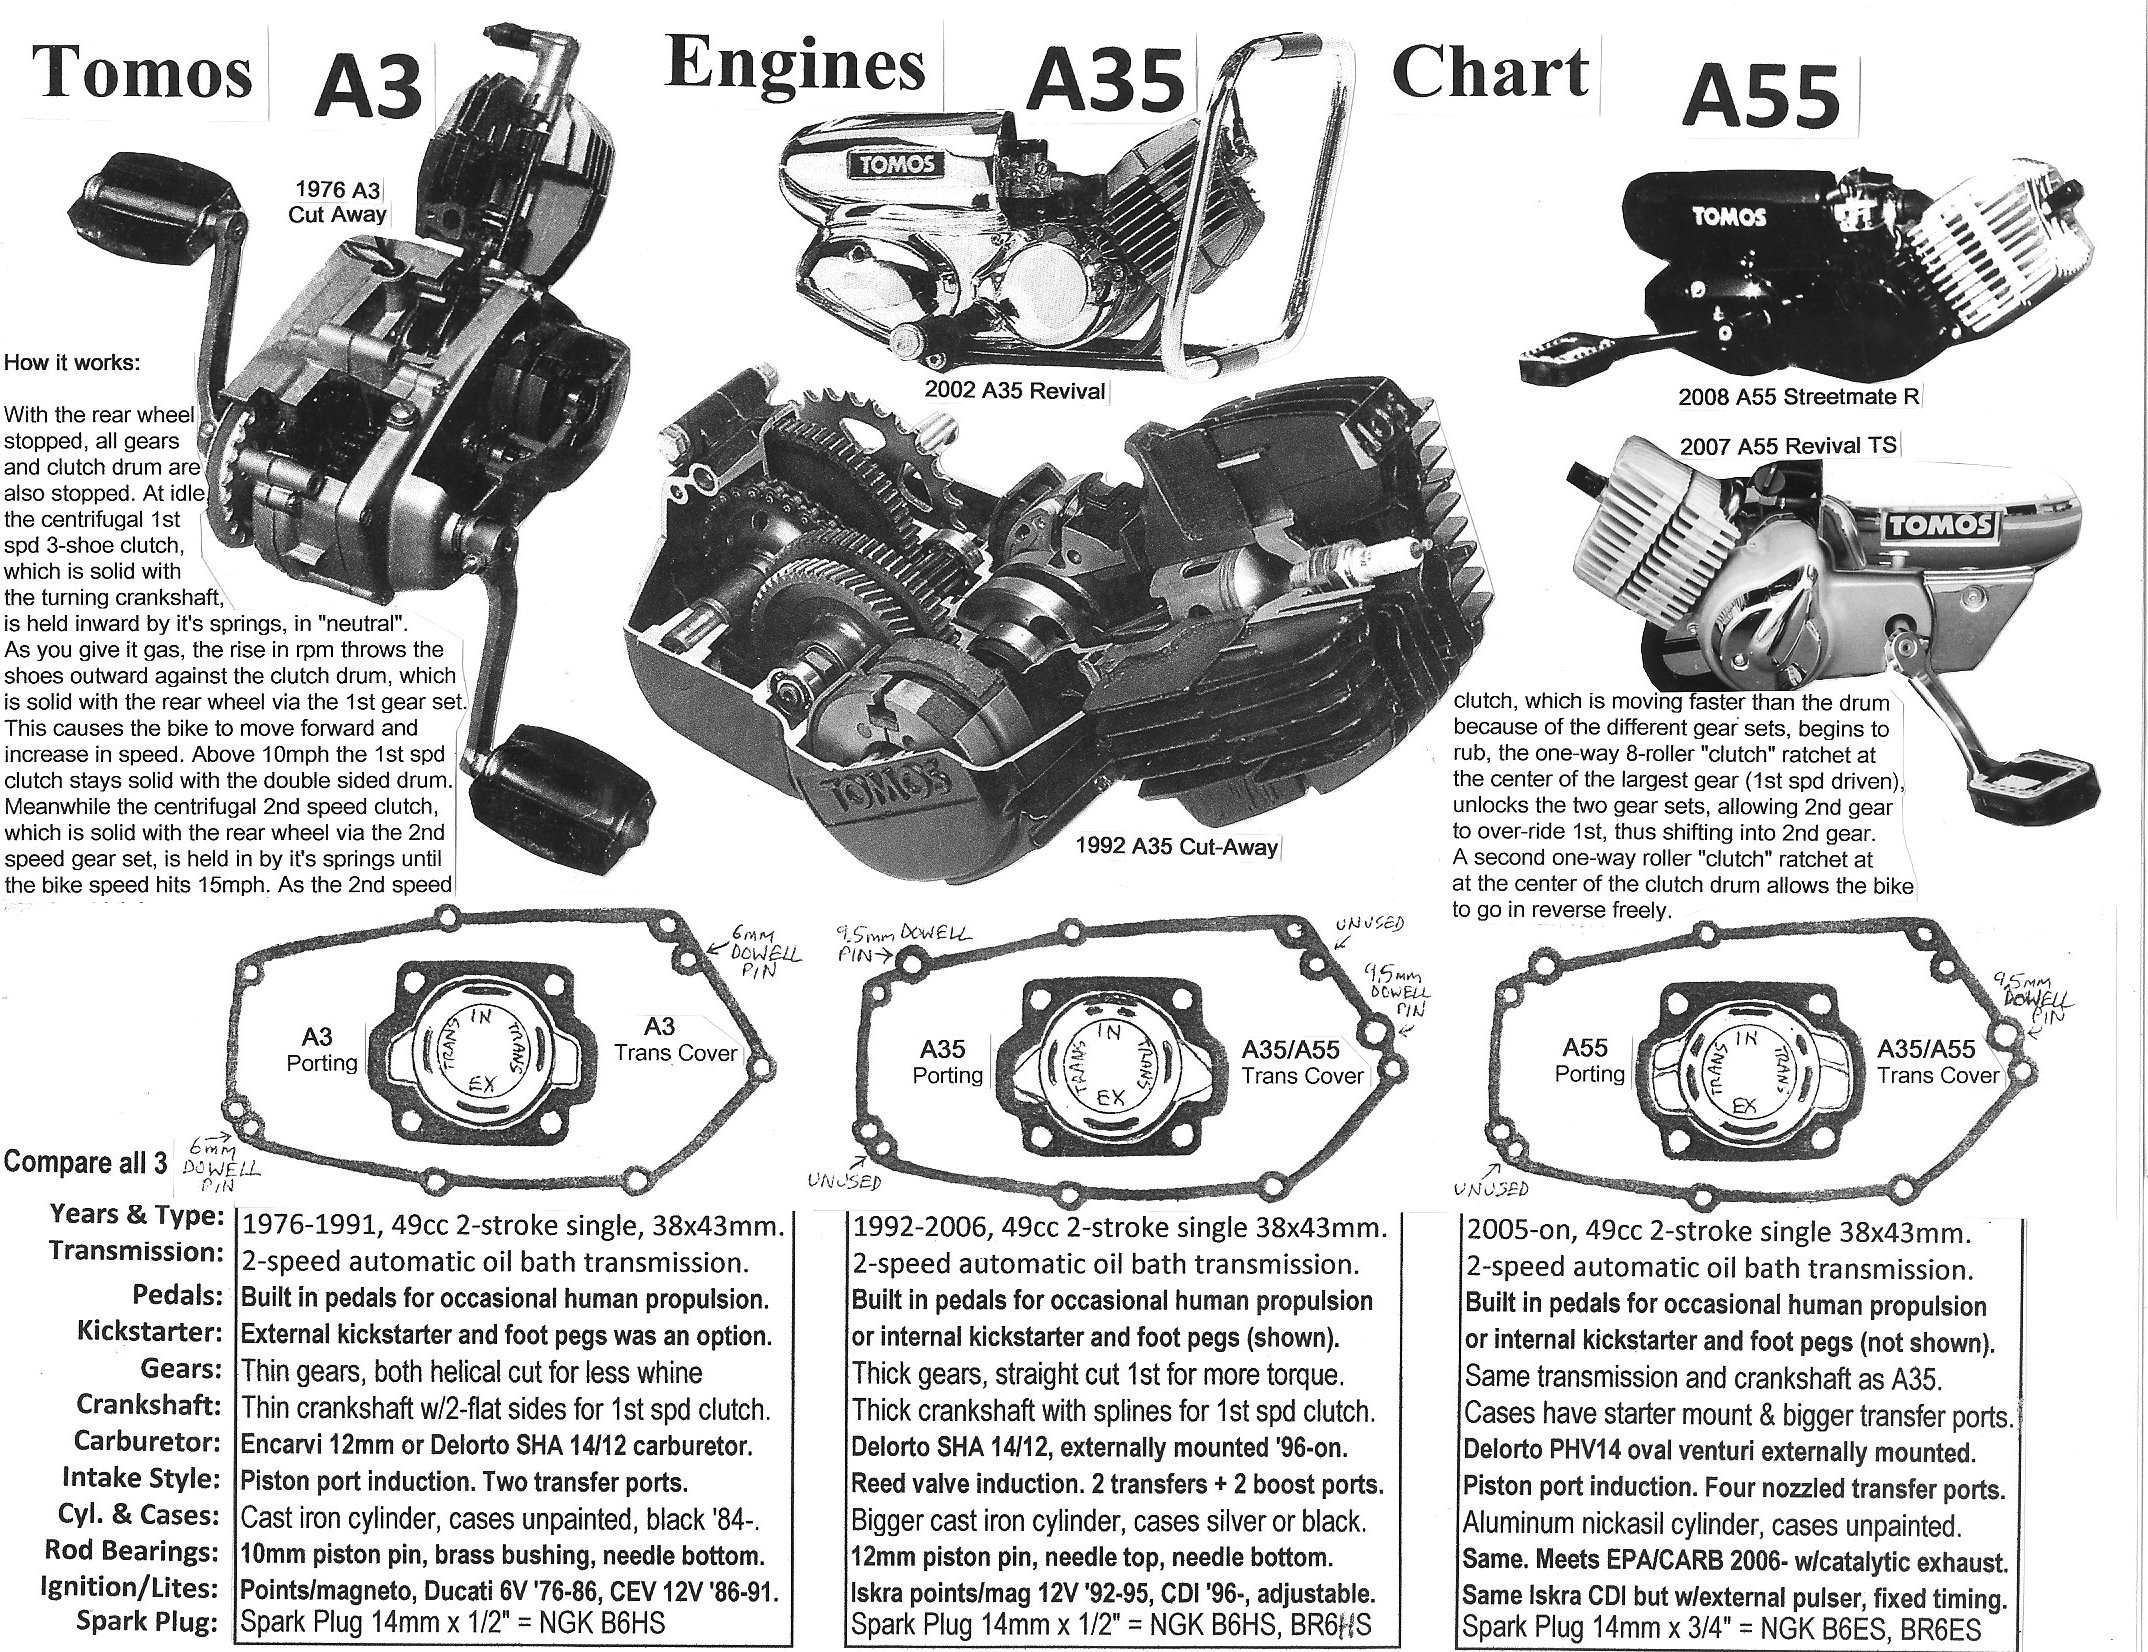 Tomos A55 Engine Diagram Re tomos A35 55 Vs A52 Engine [by Ajwasp] — Moped Army Of Tomos A55 Engine Diagram